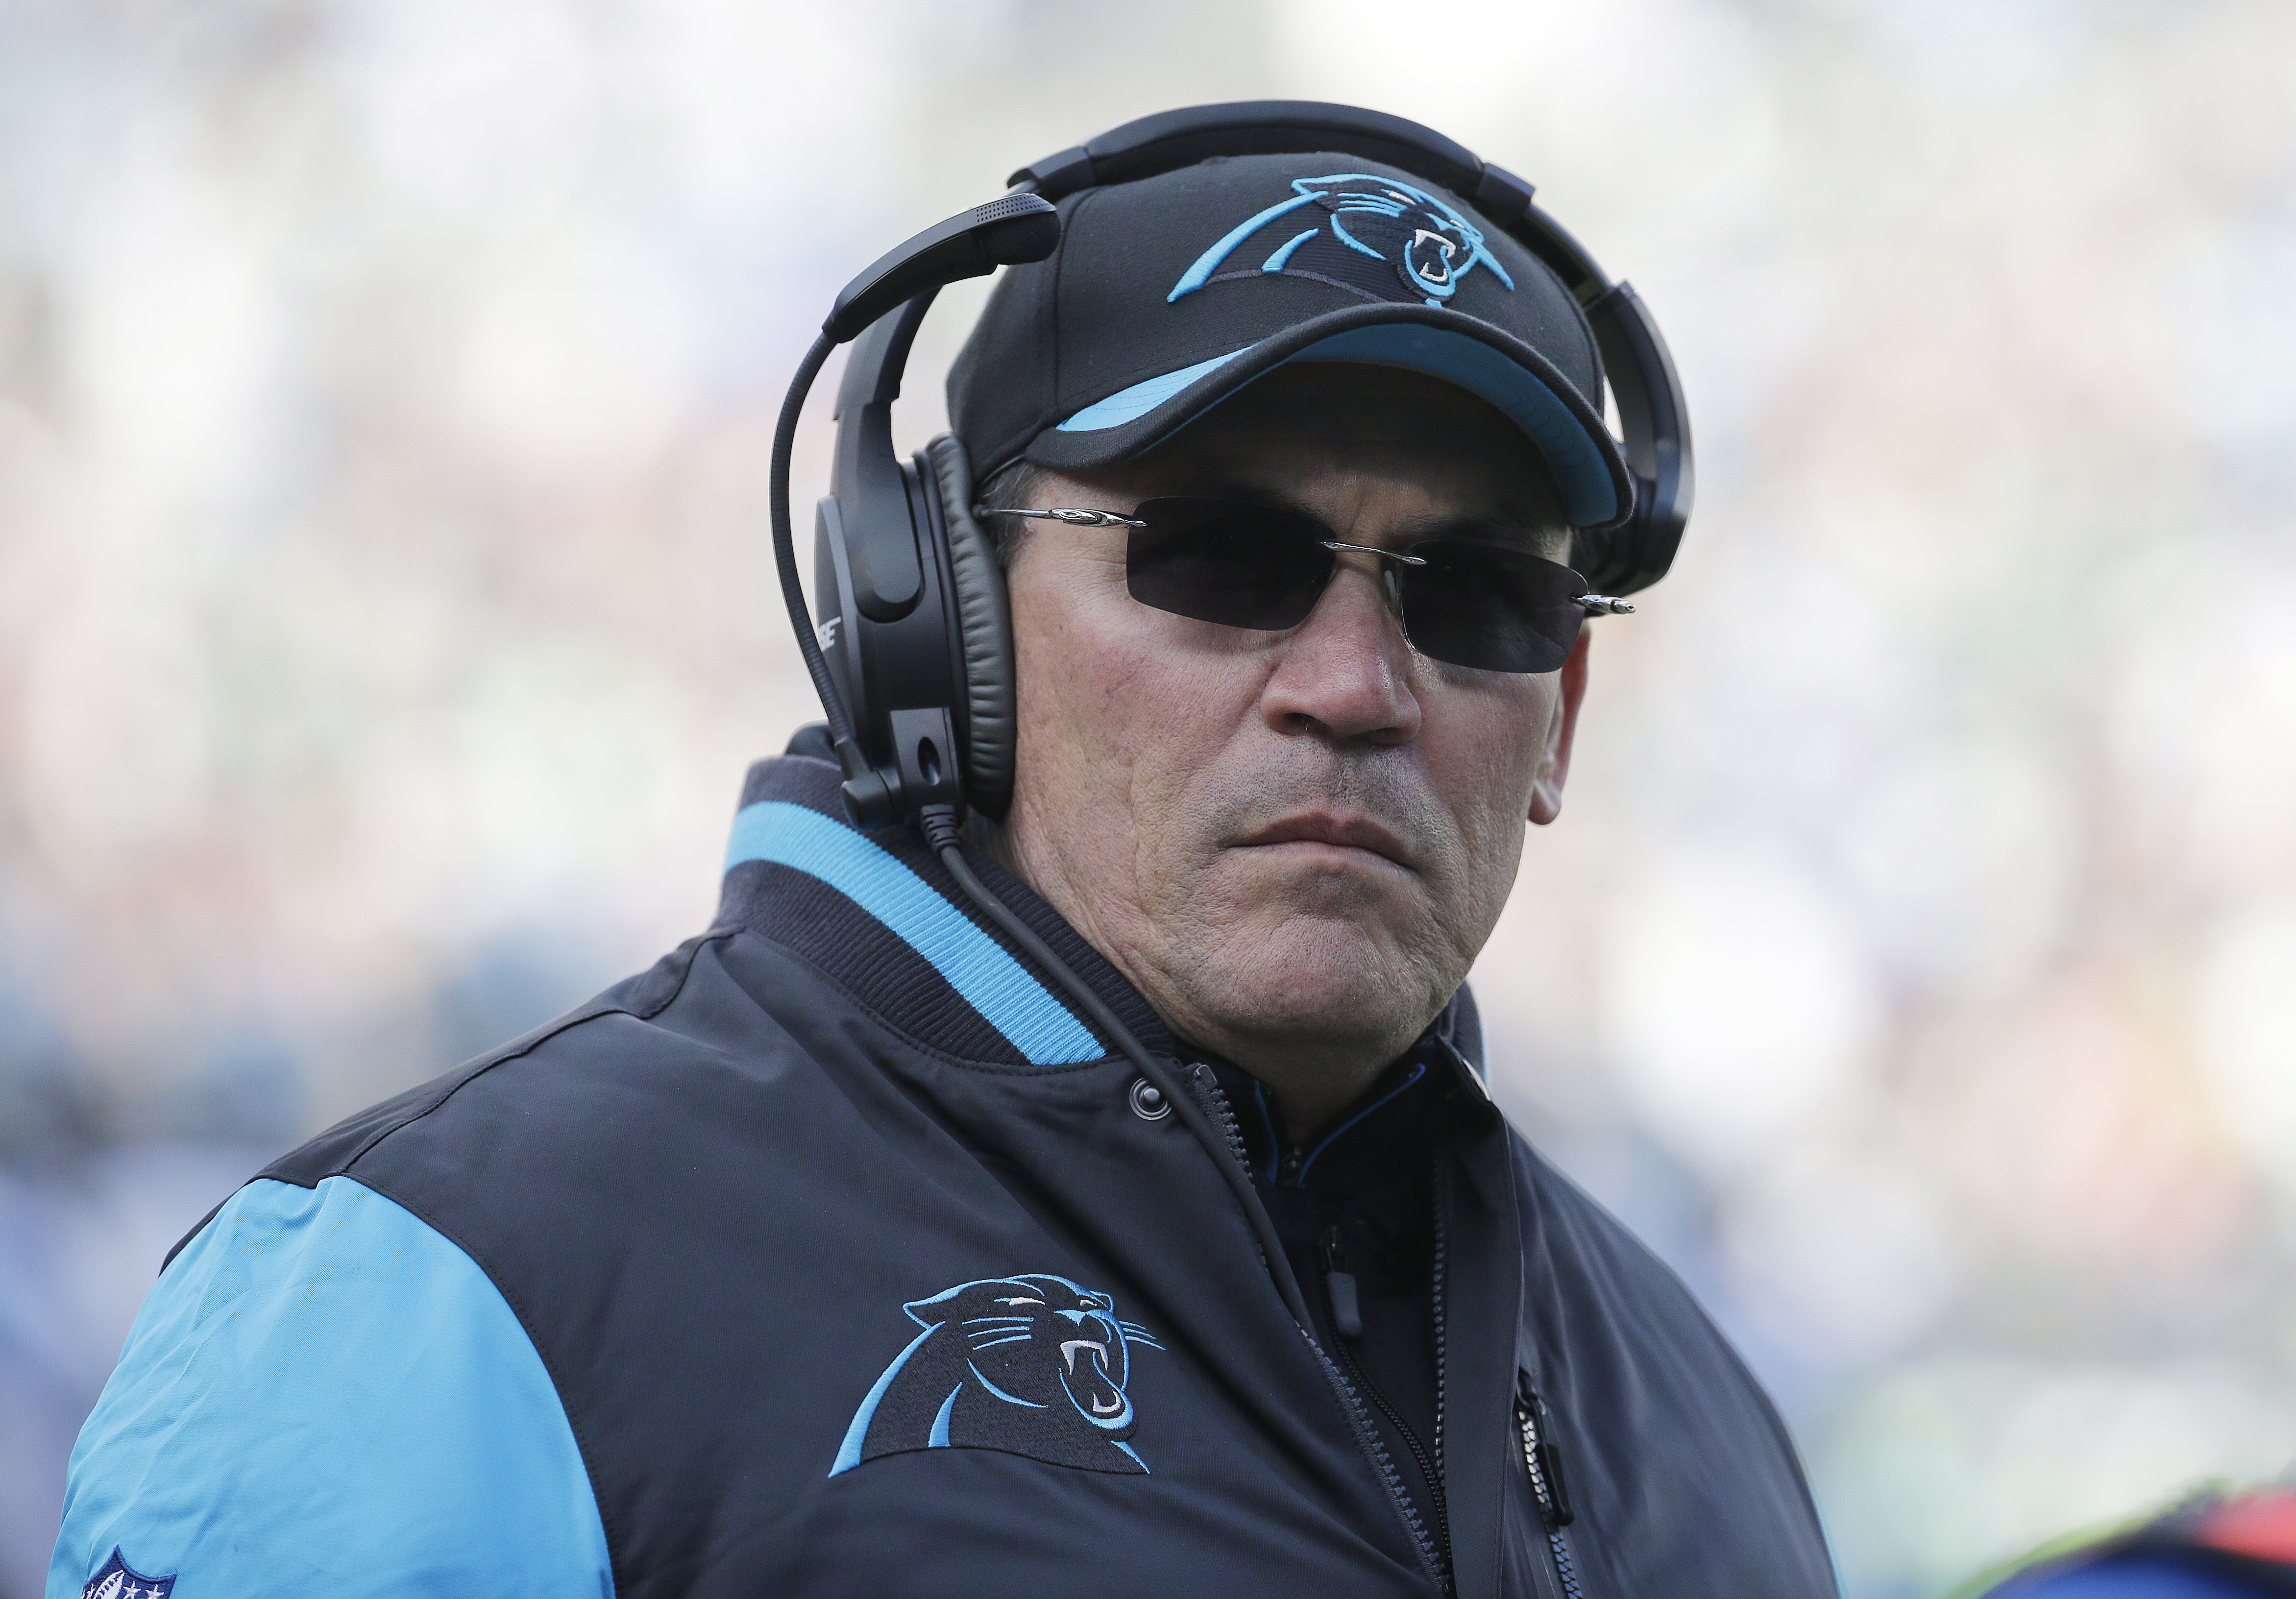 Carolina Panthers head coach Ron Rivera walks on the sidelines during the second half of an NFL divisional playoff football game against the Seattle Seahawks, Sunday, Jan. 17, 2016, in Charlotte, N.C. (AP Photo/Chuck Burton)